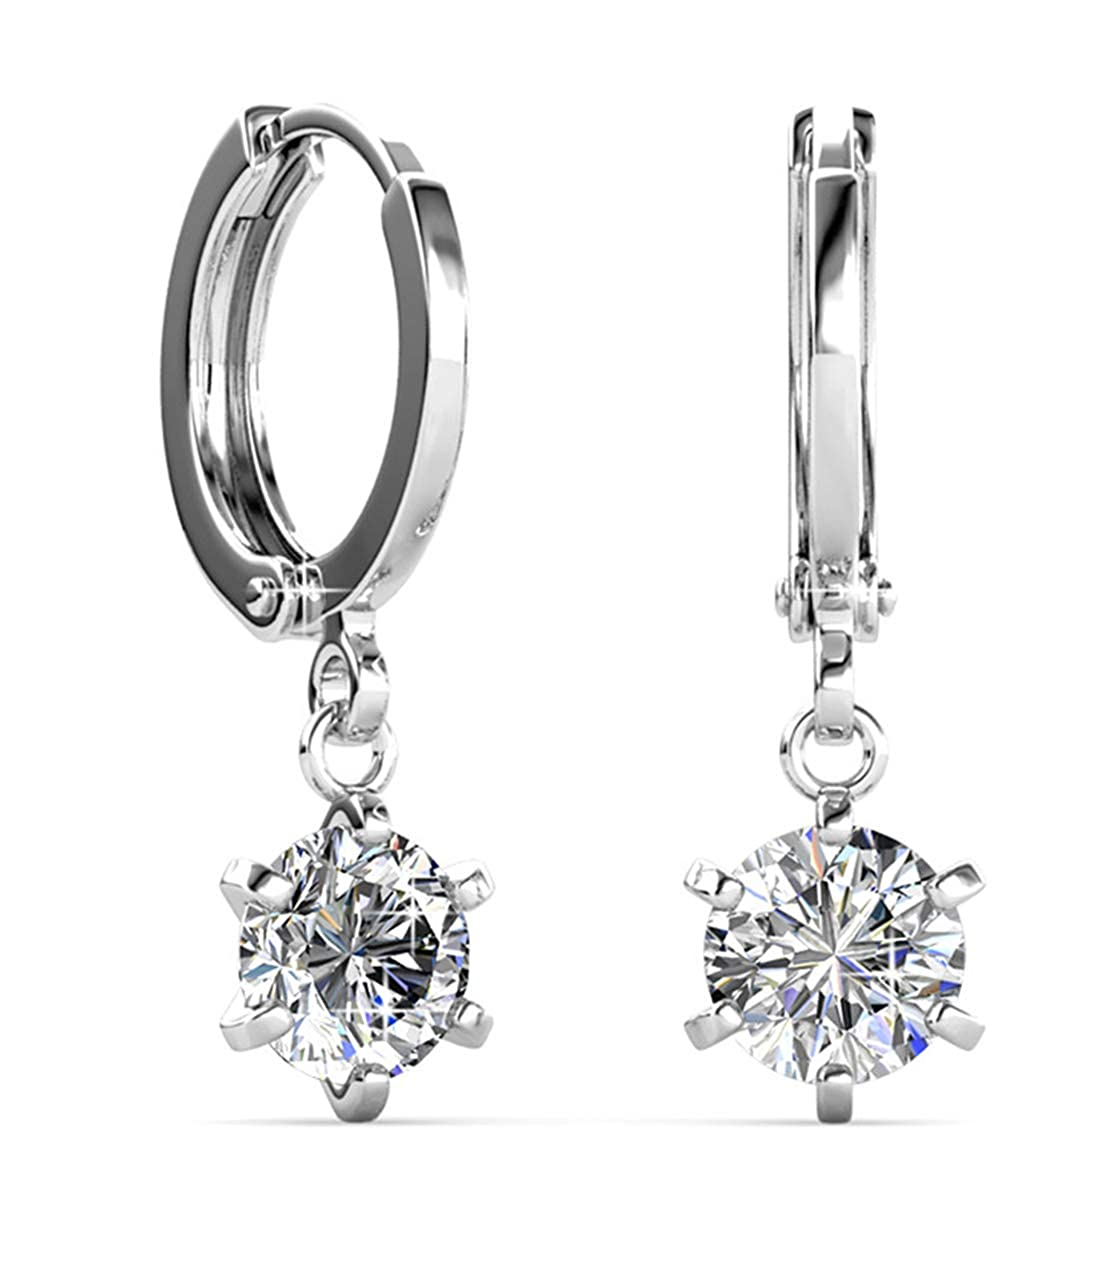 exquisite craftsmanship buy popular elegant and graceful Jade Marie Deserving Silver Drop Hoop Earrings, 18k White Gold Plated  Solitaire Dangle Earrings with Swarovski Crystals, Beautiful Sparkling Hoops